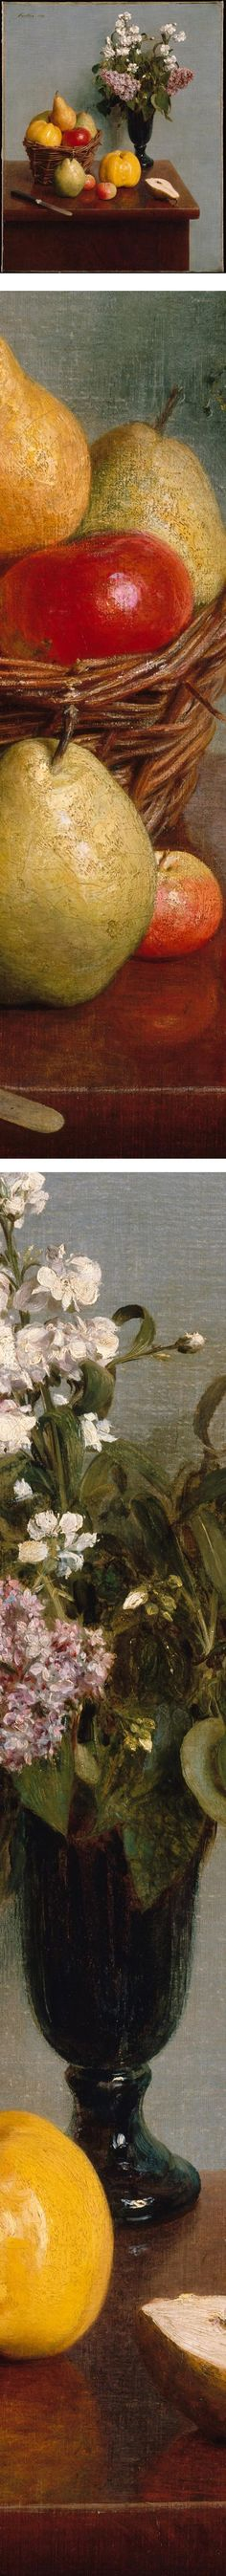 Still Life with Flowers and Fruit, Henri Fantin-Latour